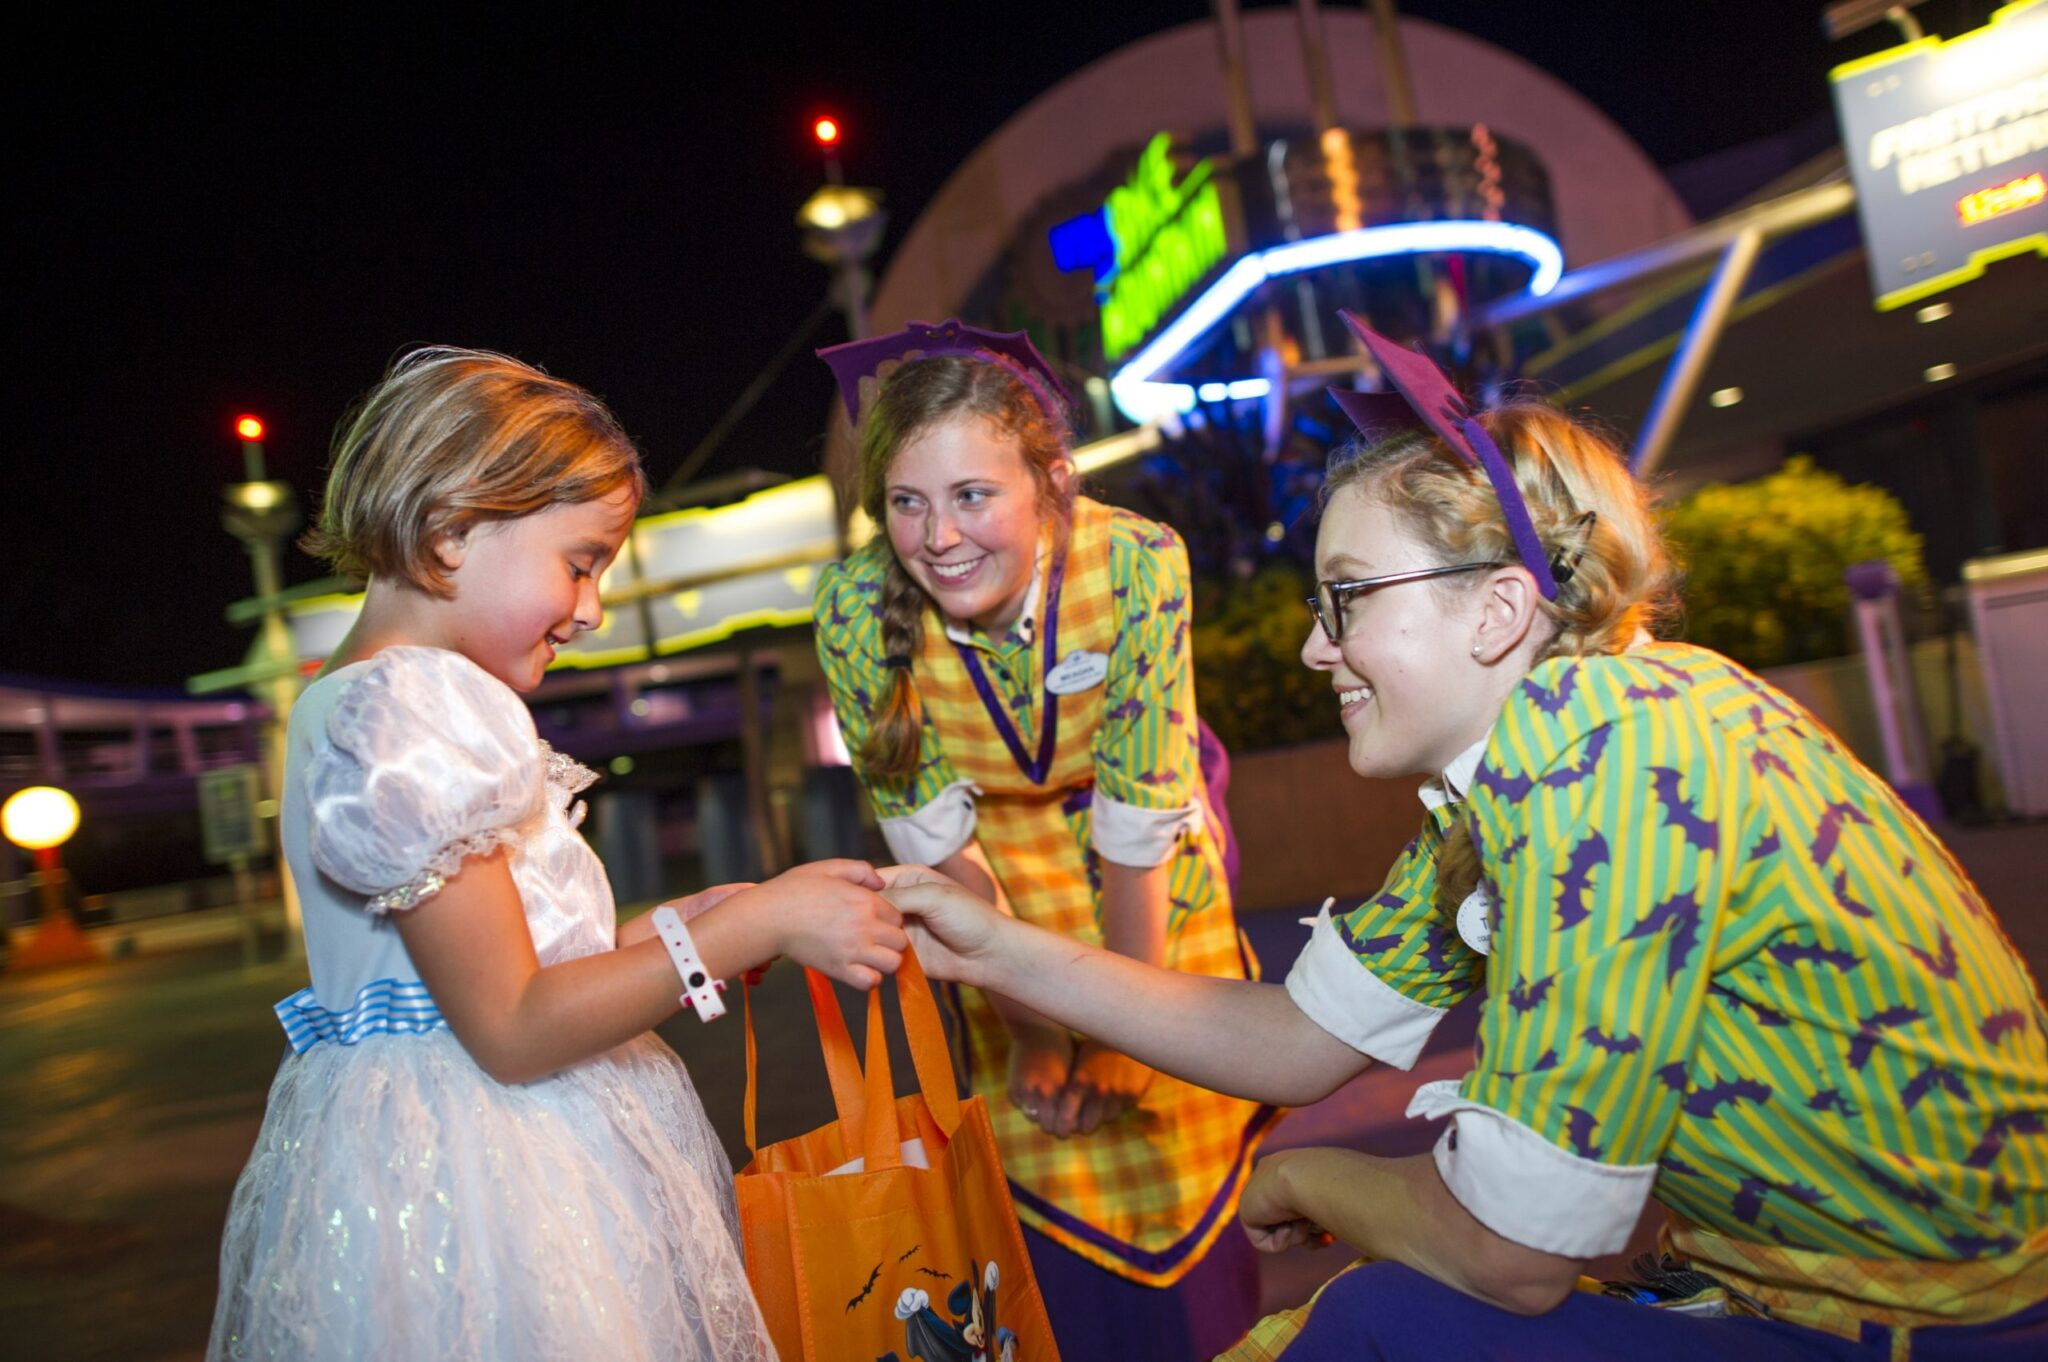 trick-or-treating-at-mickeys-not-so-scary-halloween-party